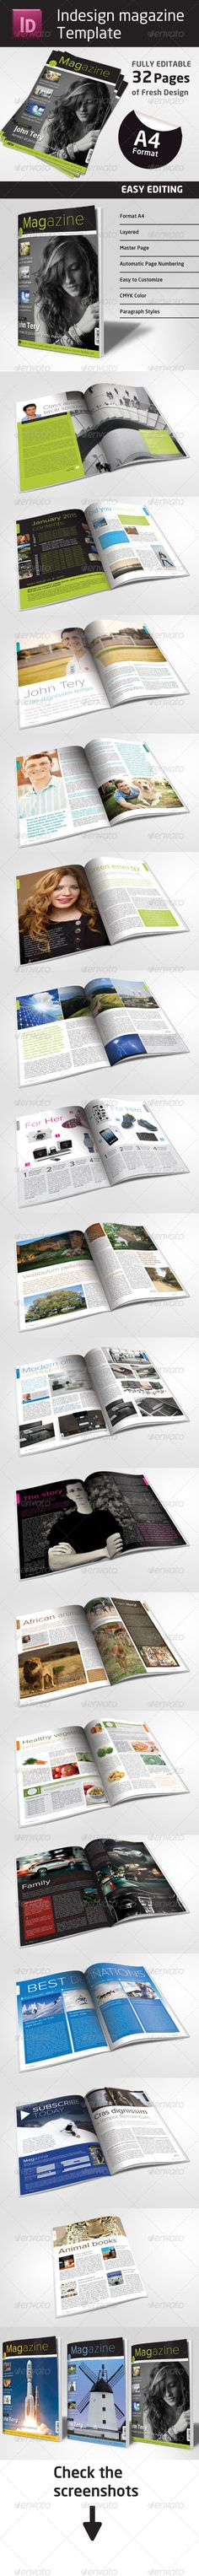 This Indesign fresh, nice looking magazine template contains fully editable 32 pages in A4 format, which can fit any needs. (compa